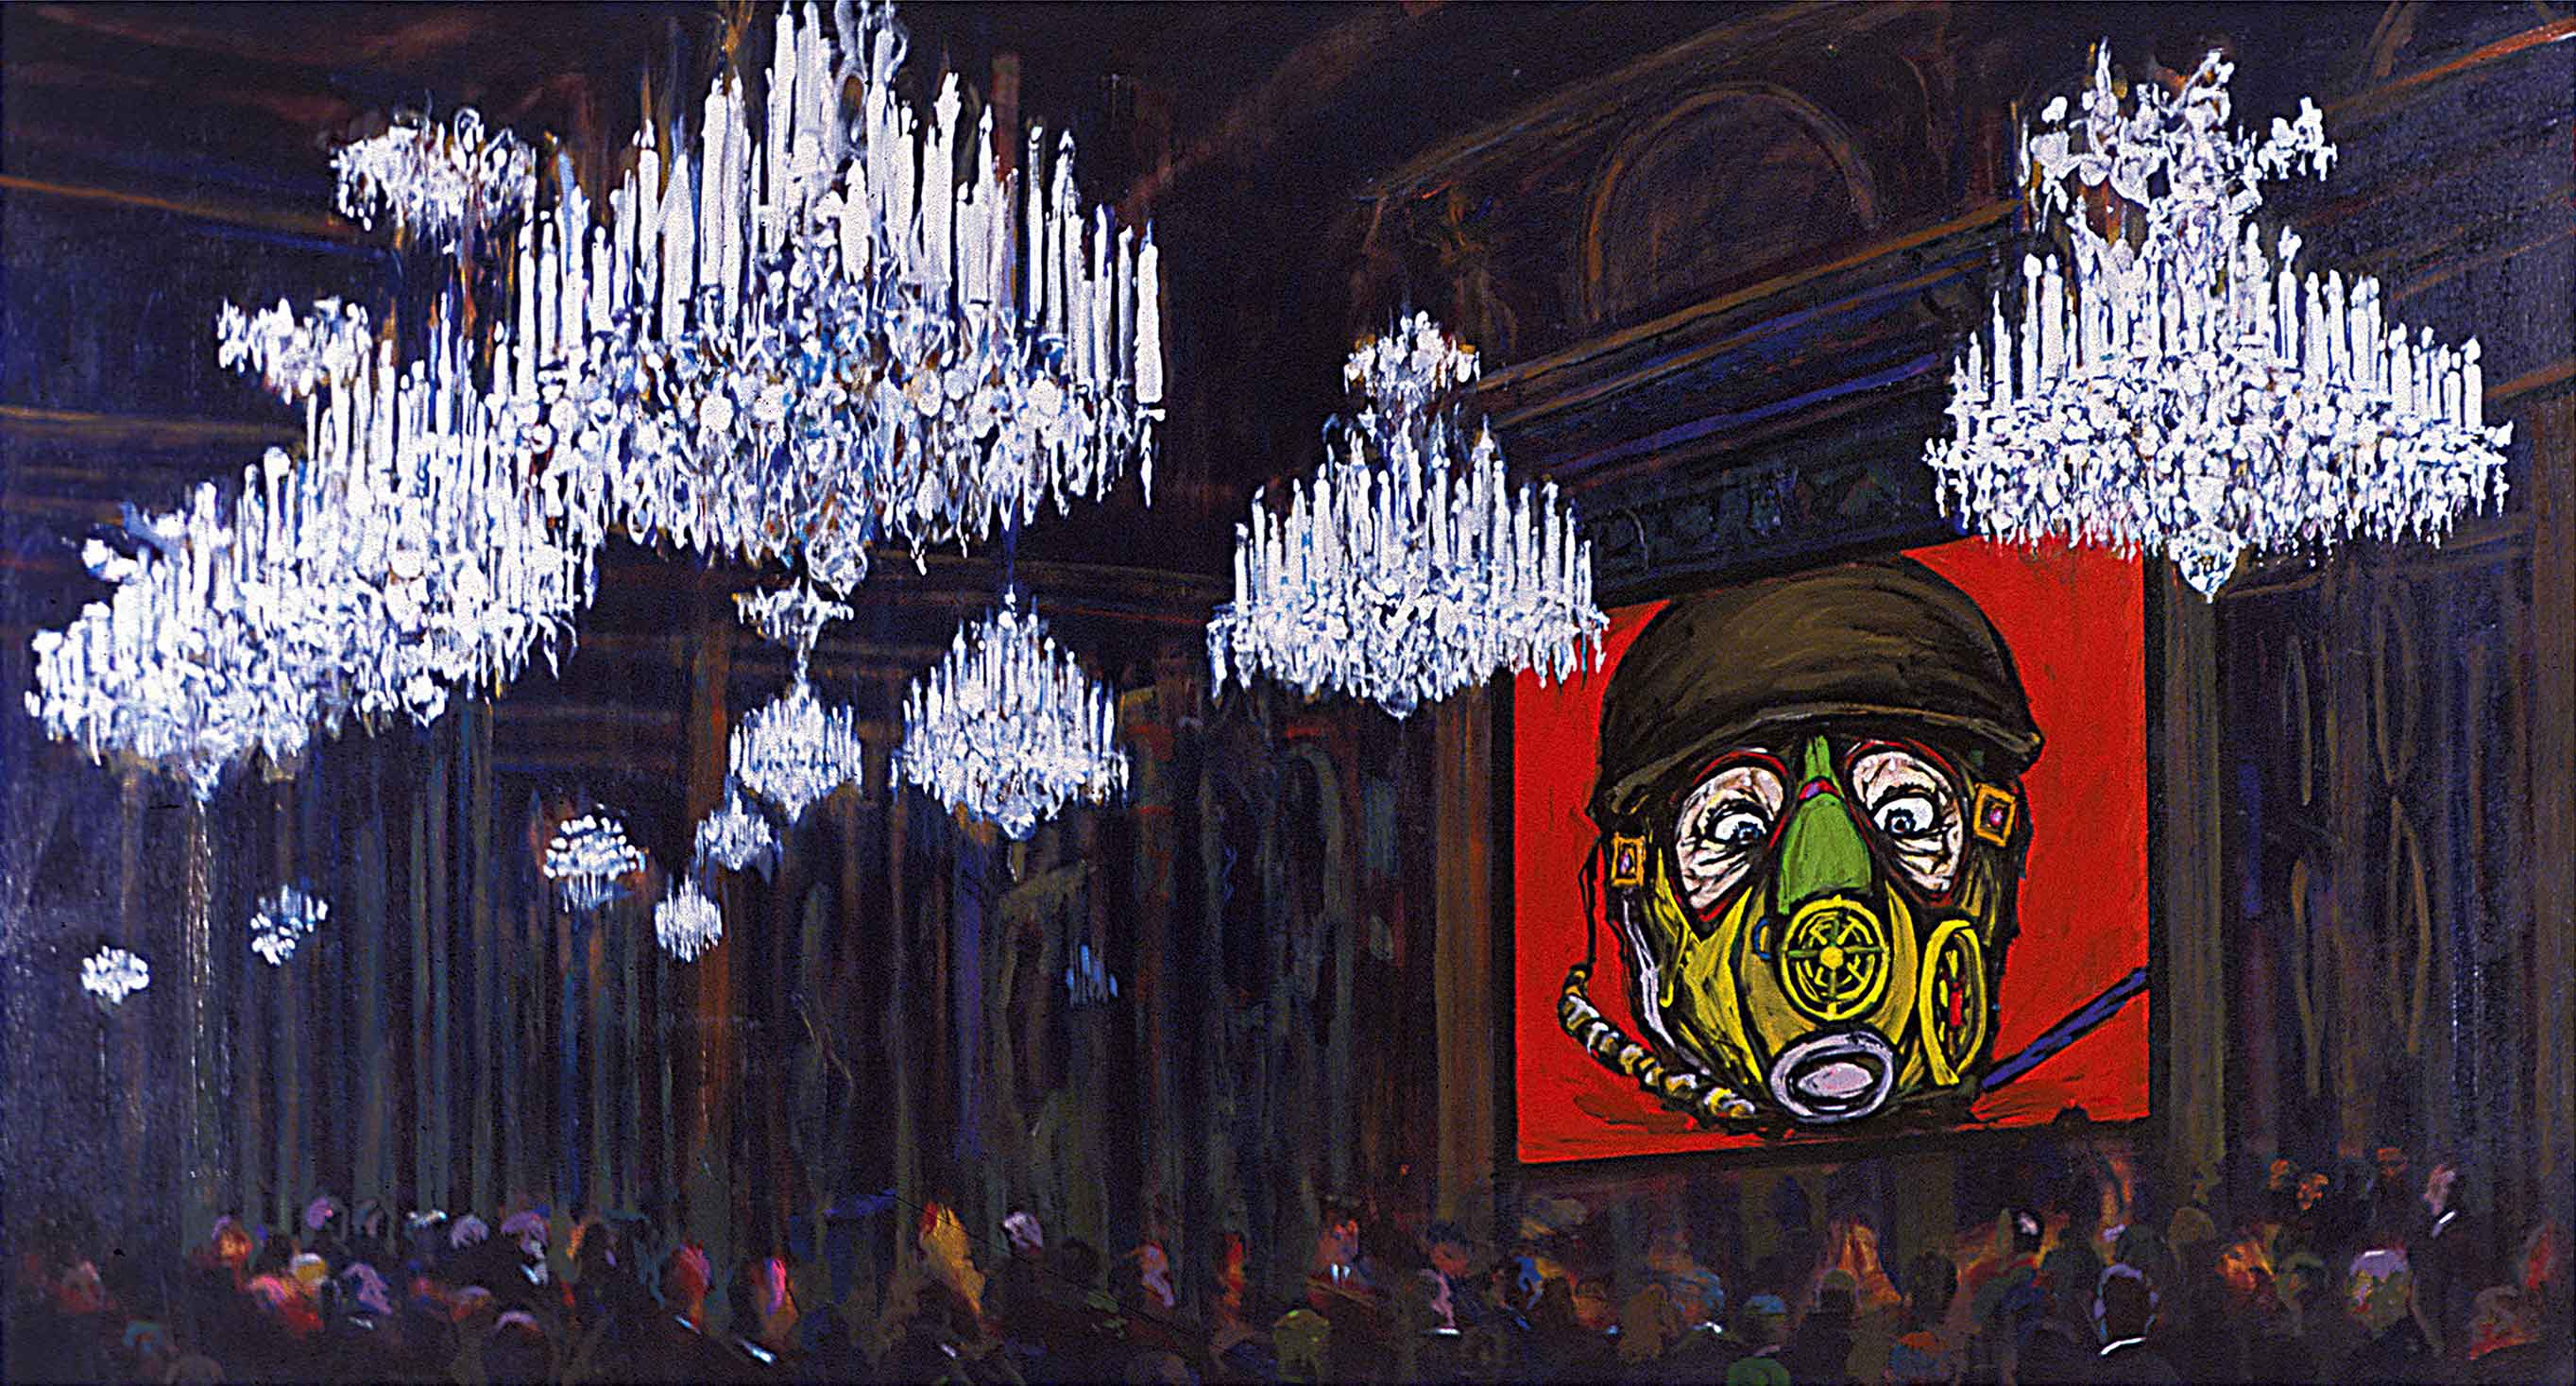 "Arnold Mesches, Coming Attractions 2, 2005, acrylic on canvas, 60"" x 110"""